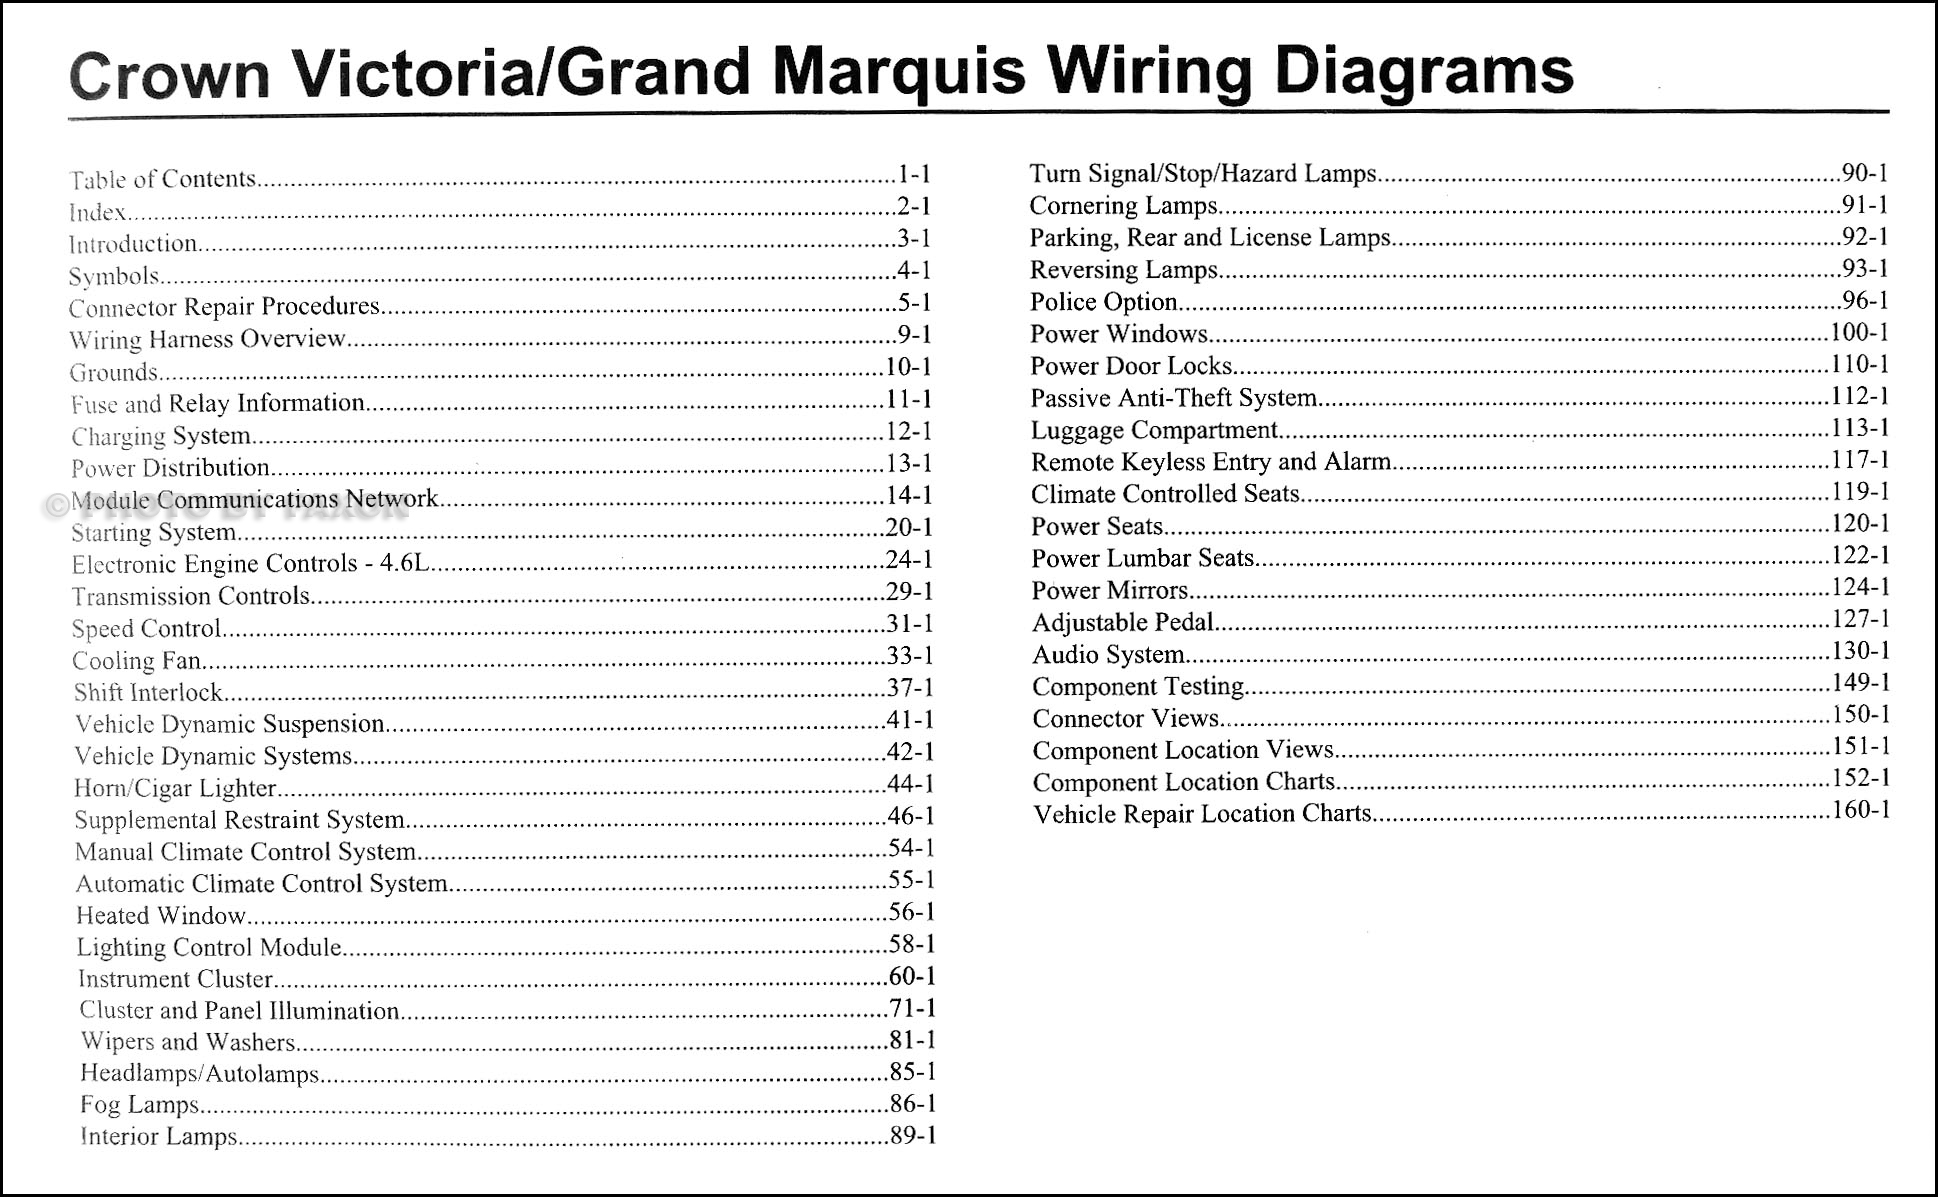 1998 Grand Marquis Radio Wiring Diagram Libraries Ford F 150 C290 Connector For 2000 Mercury Diagrams Scematic2000 Simple